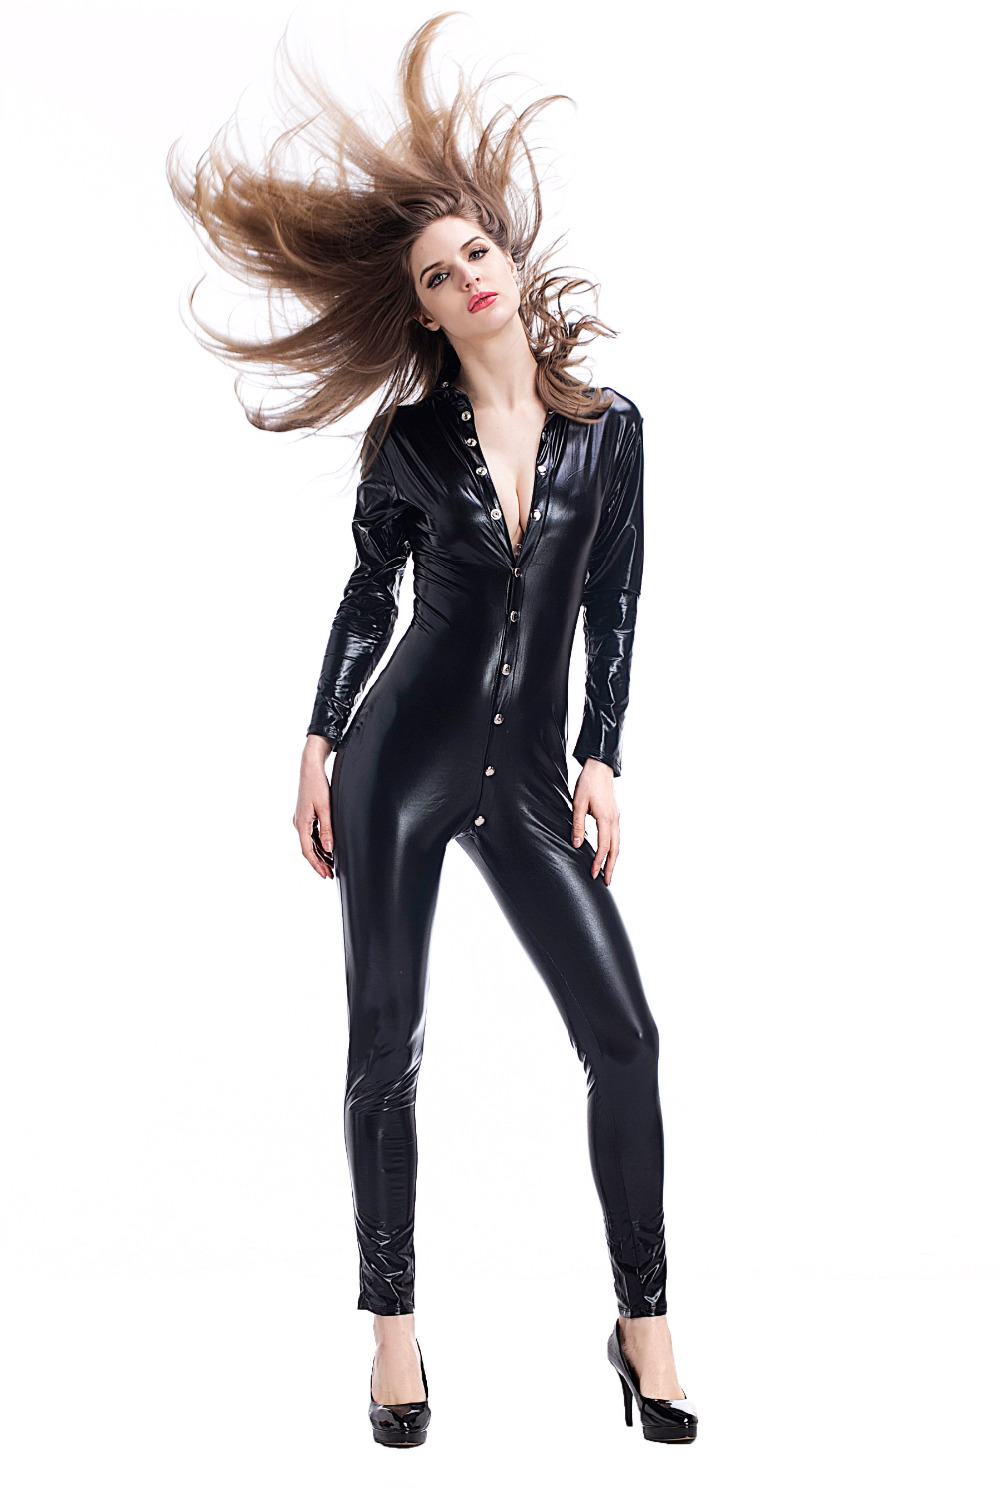 First Feeling New Arrival Lady Black Leather Latex Bodysuit Bondage Teddy Catsuit Side Zipper Erotic Beachwear Swimsuit Lingerie Luggage & Bags